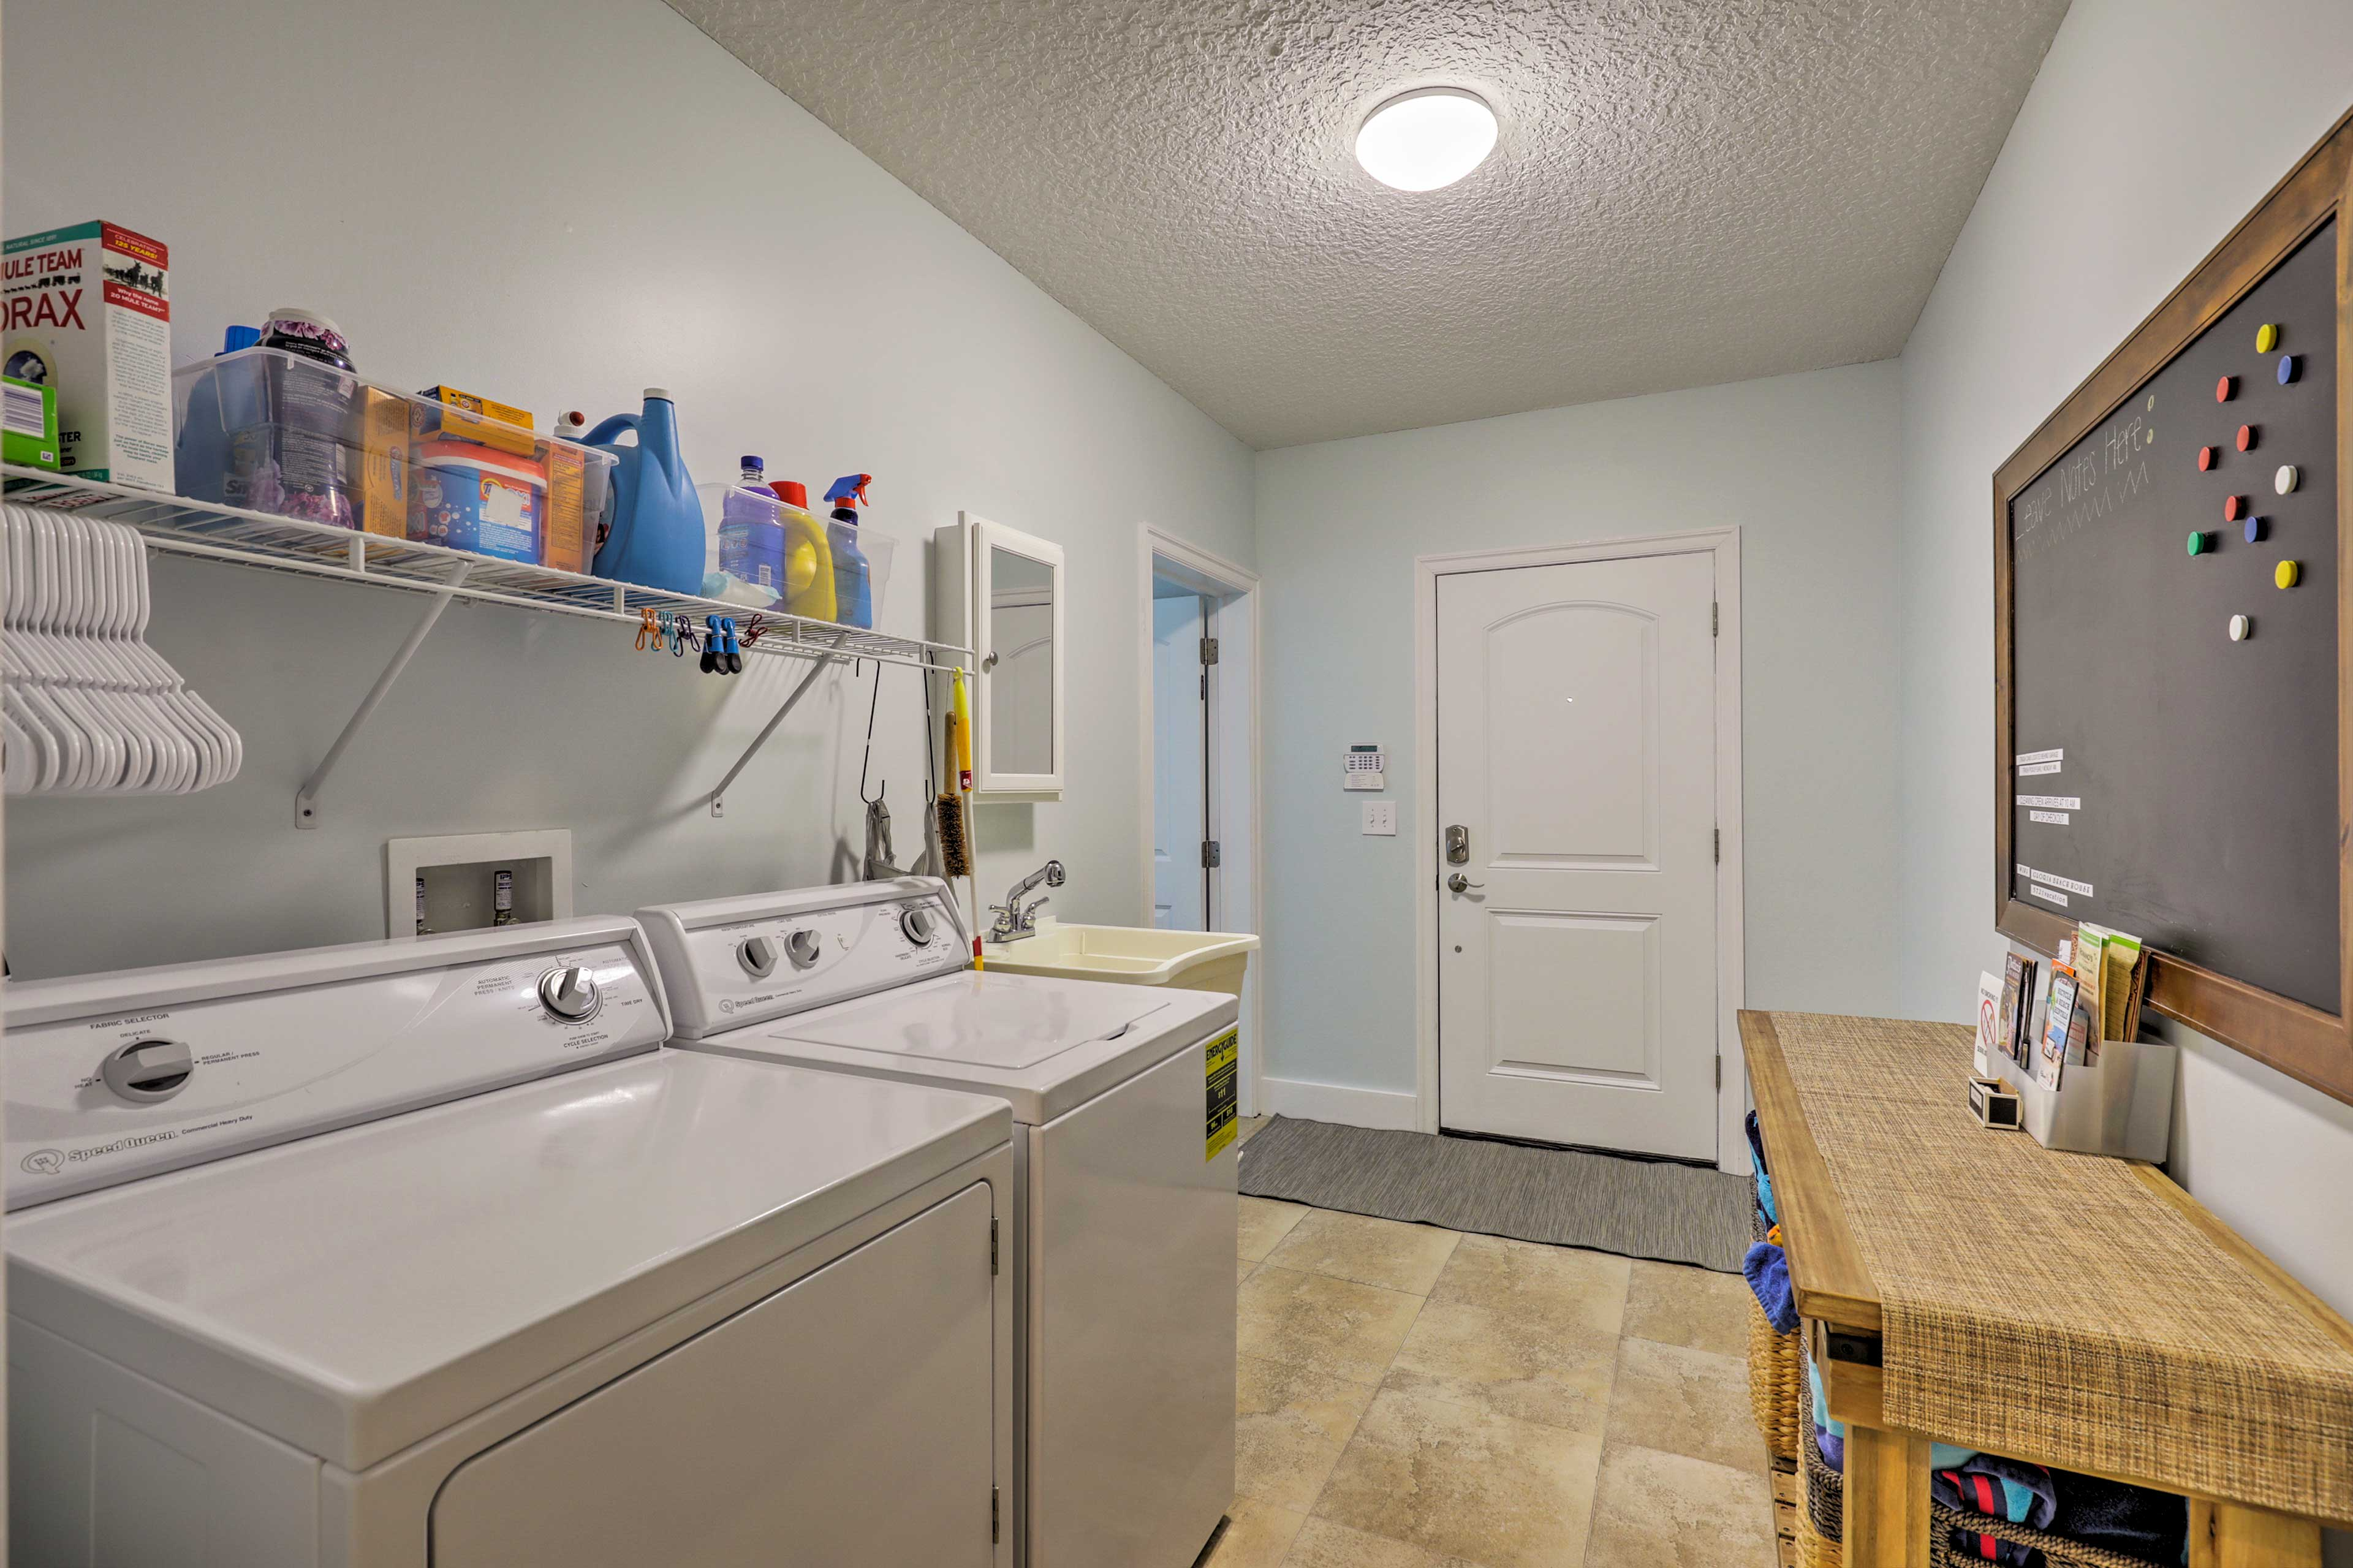 There are 2 separate laundry areas.